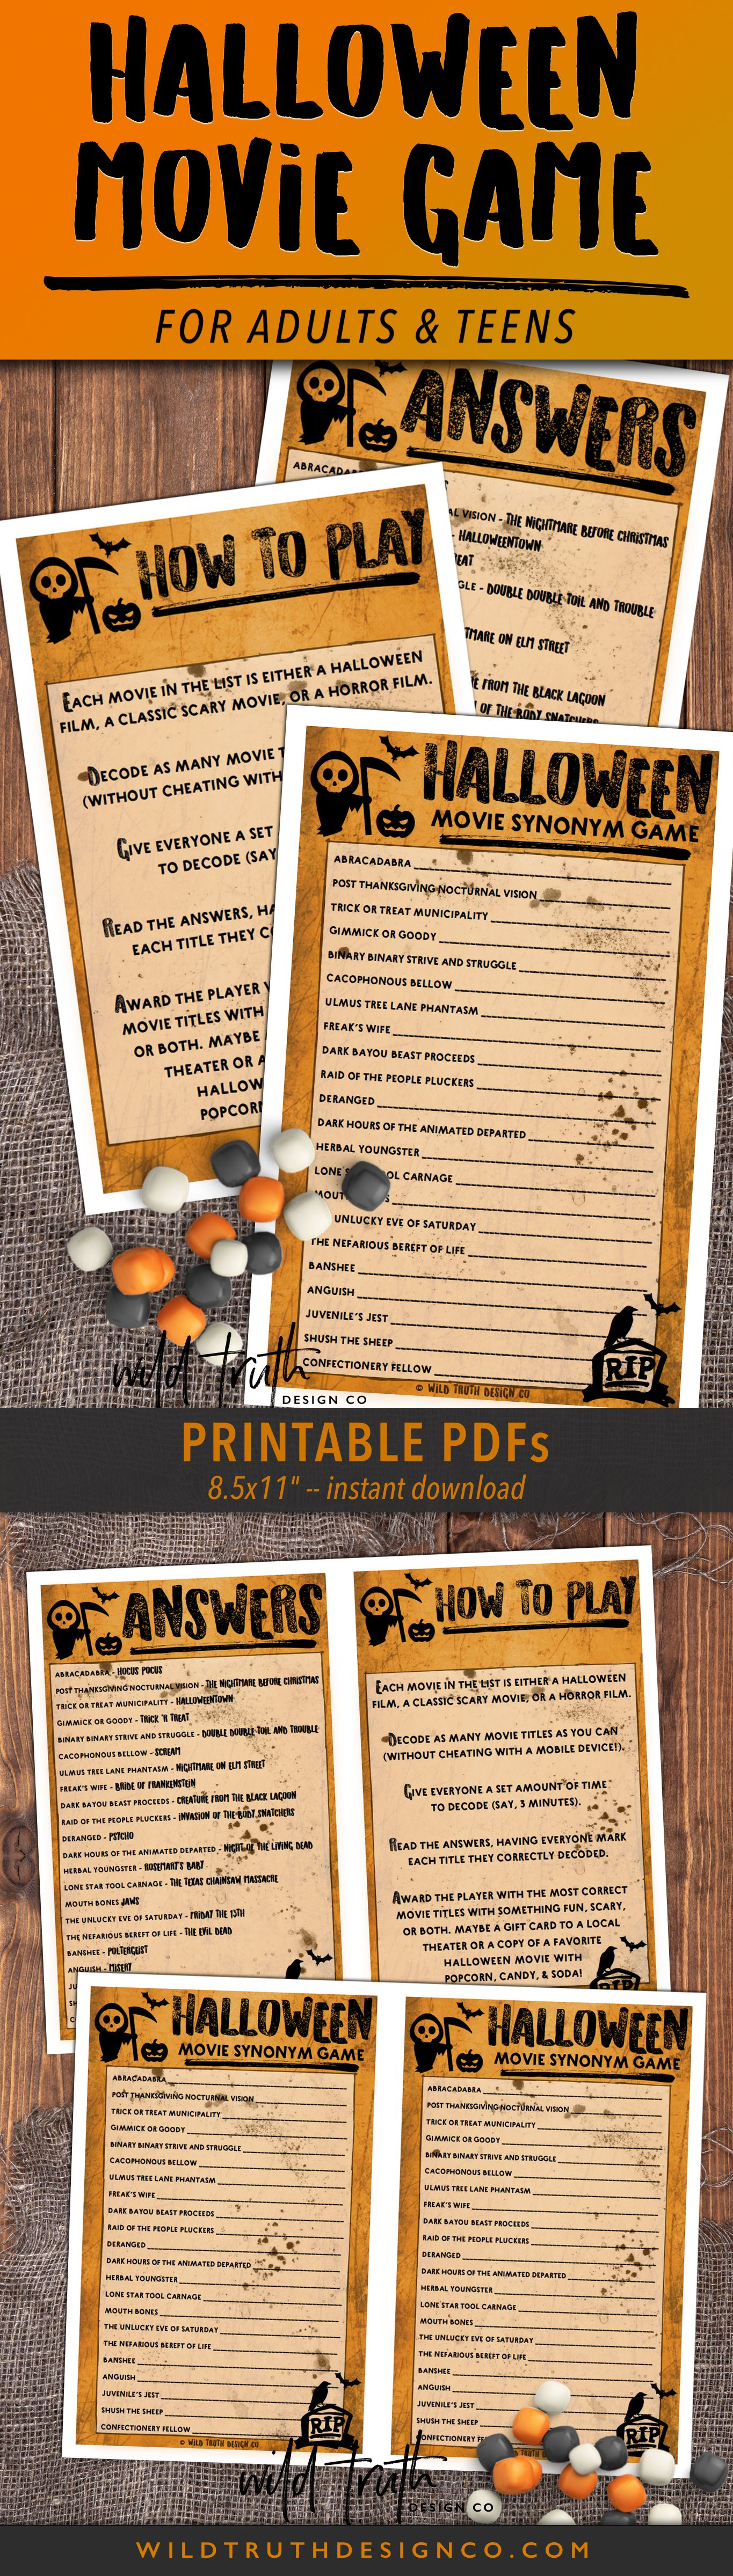 Unique Halloween Games For Adults Mad Libs Scavenger Hunt Movie Challenge Printables H102 Wild Truth Design Co Halloween Games Adults Halloween Games Unique Halloween